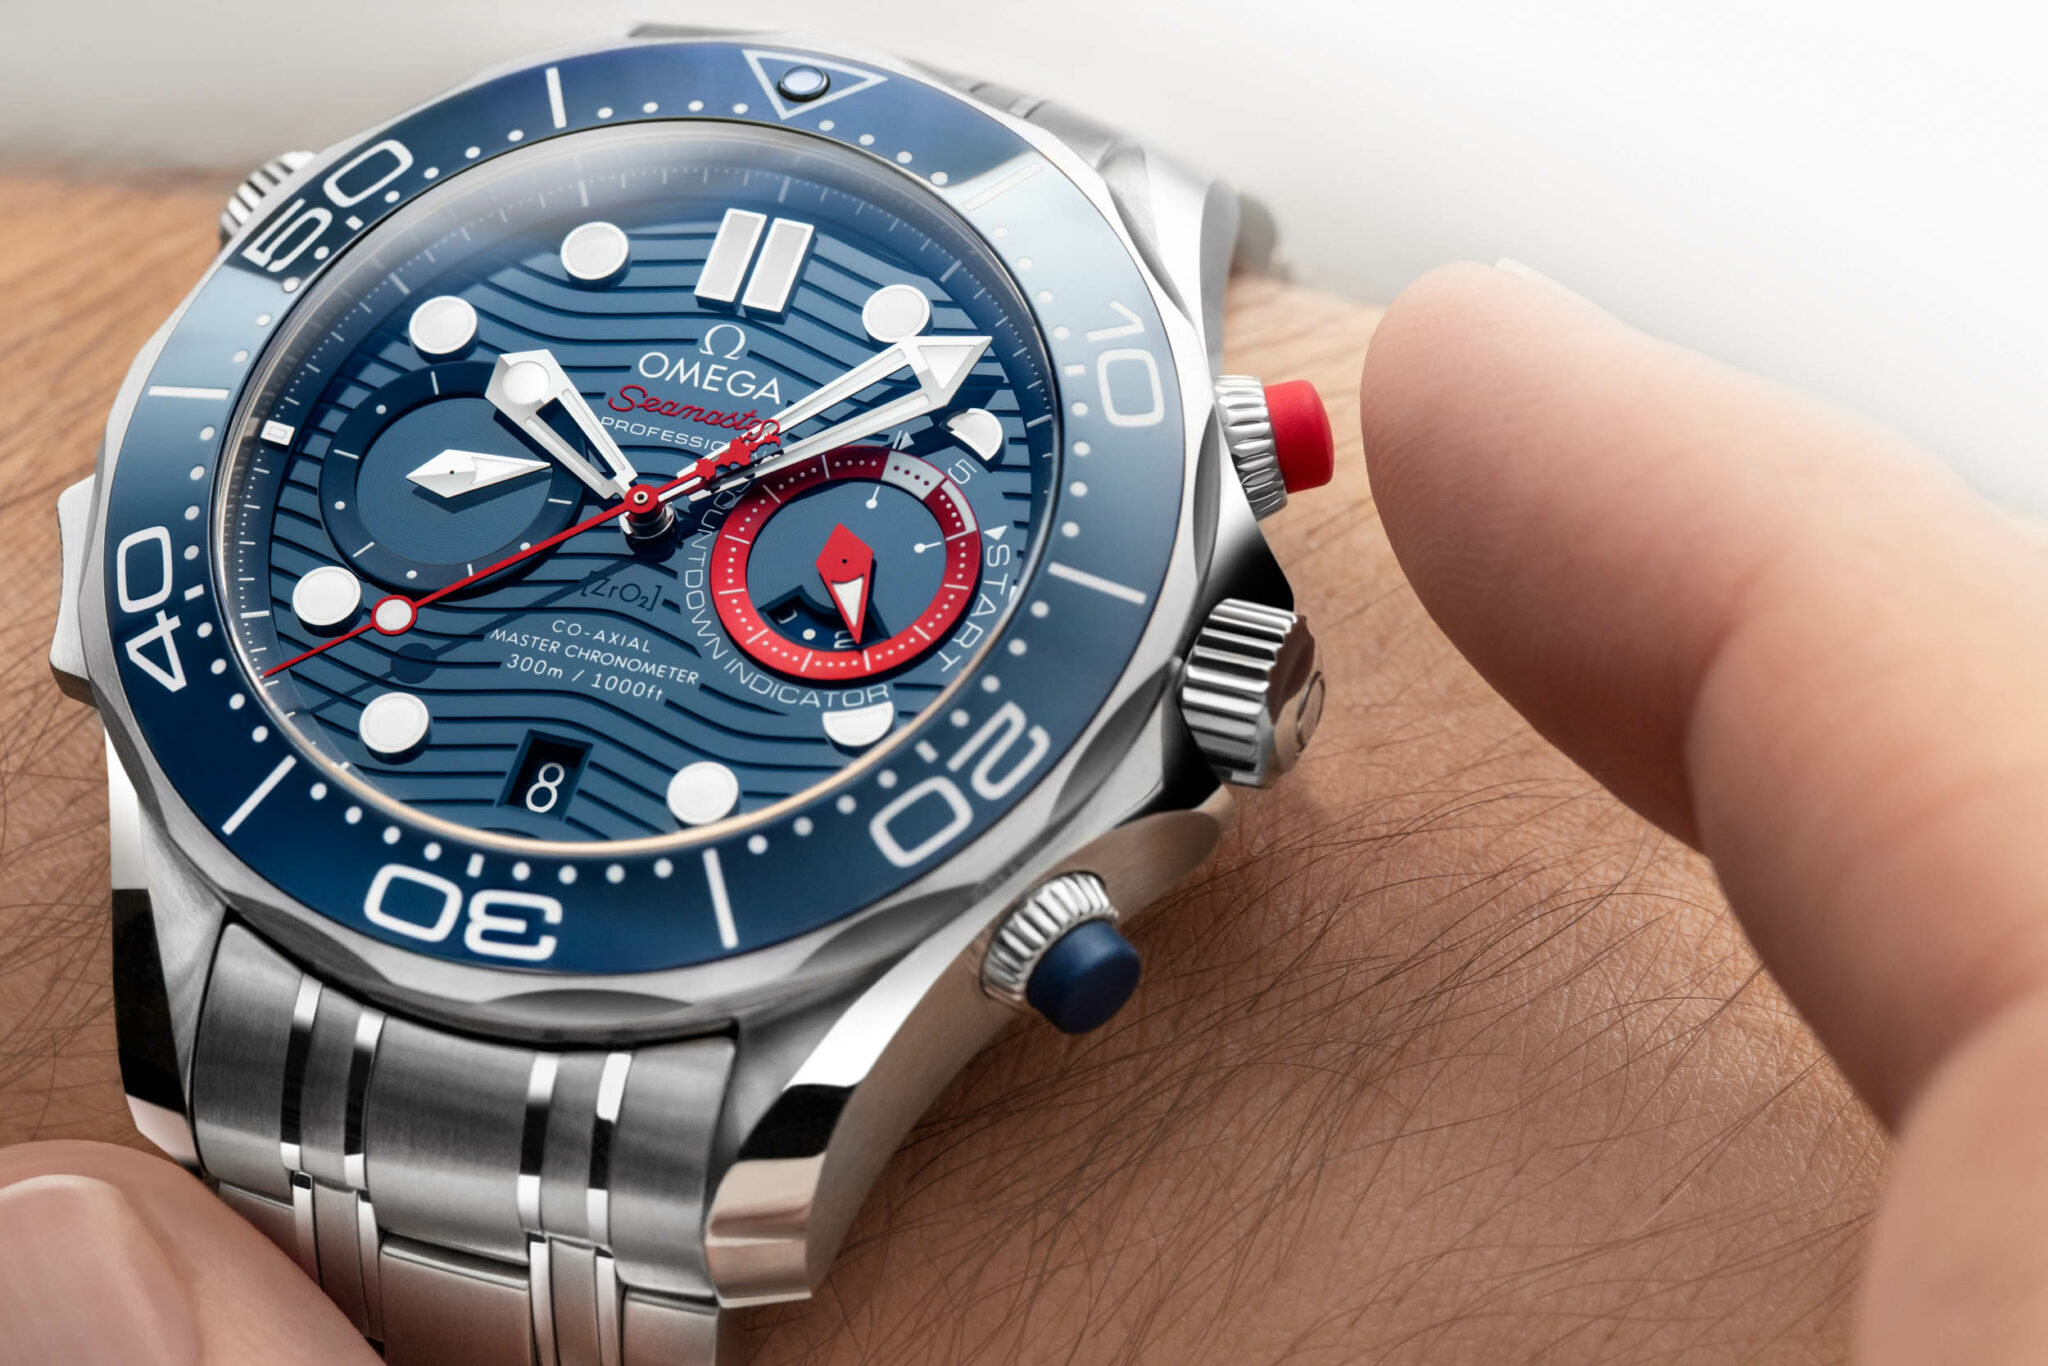 210.30.44.51.03.002_Seamaster-Diver-300M-Americas-Cup-Chronograph_image2_Landscape-2048x1366.jpg